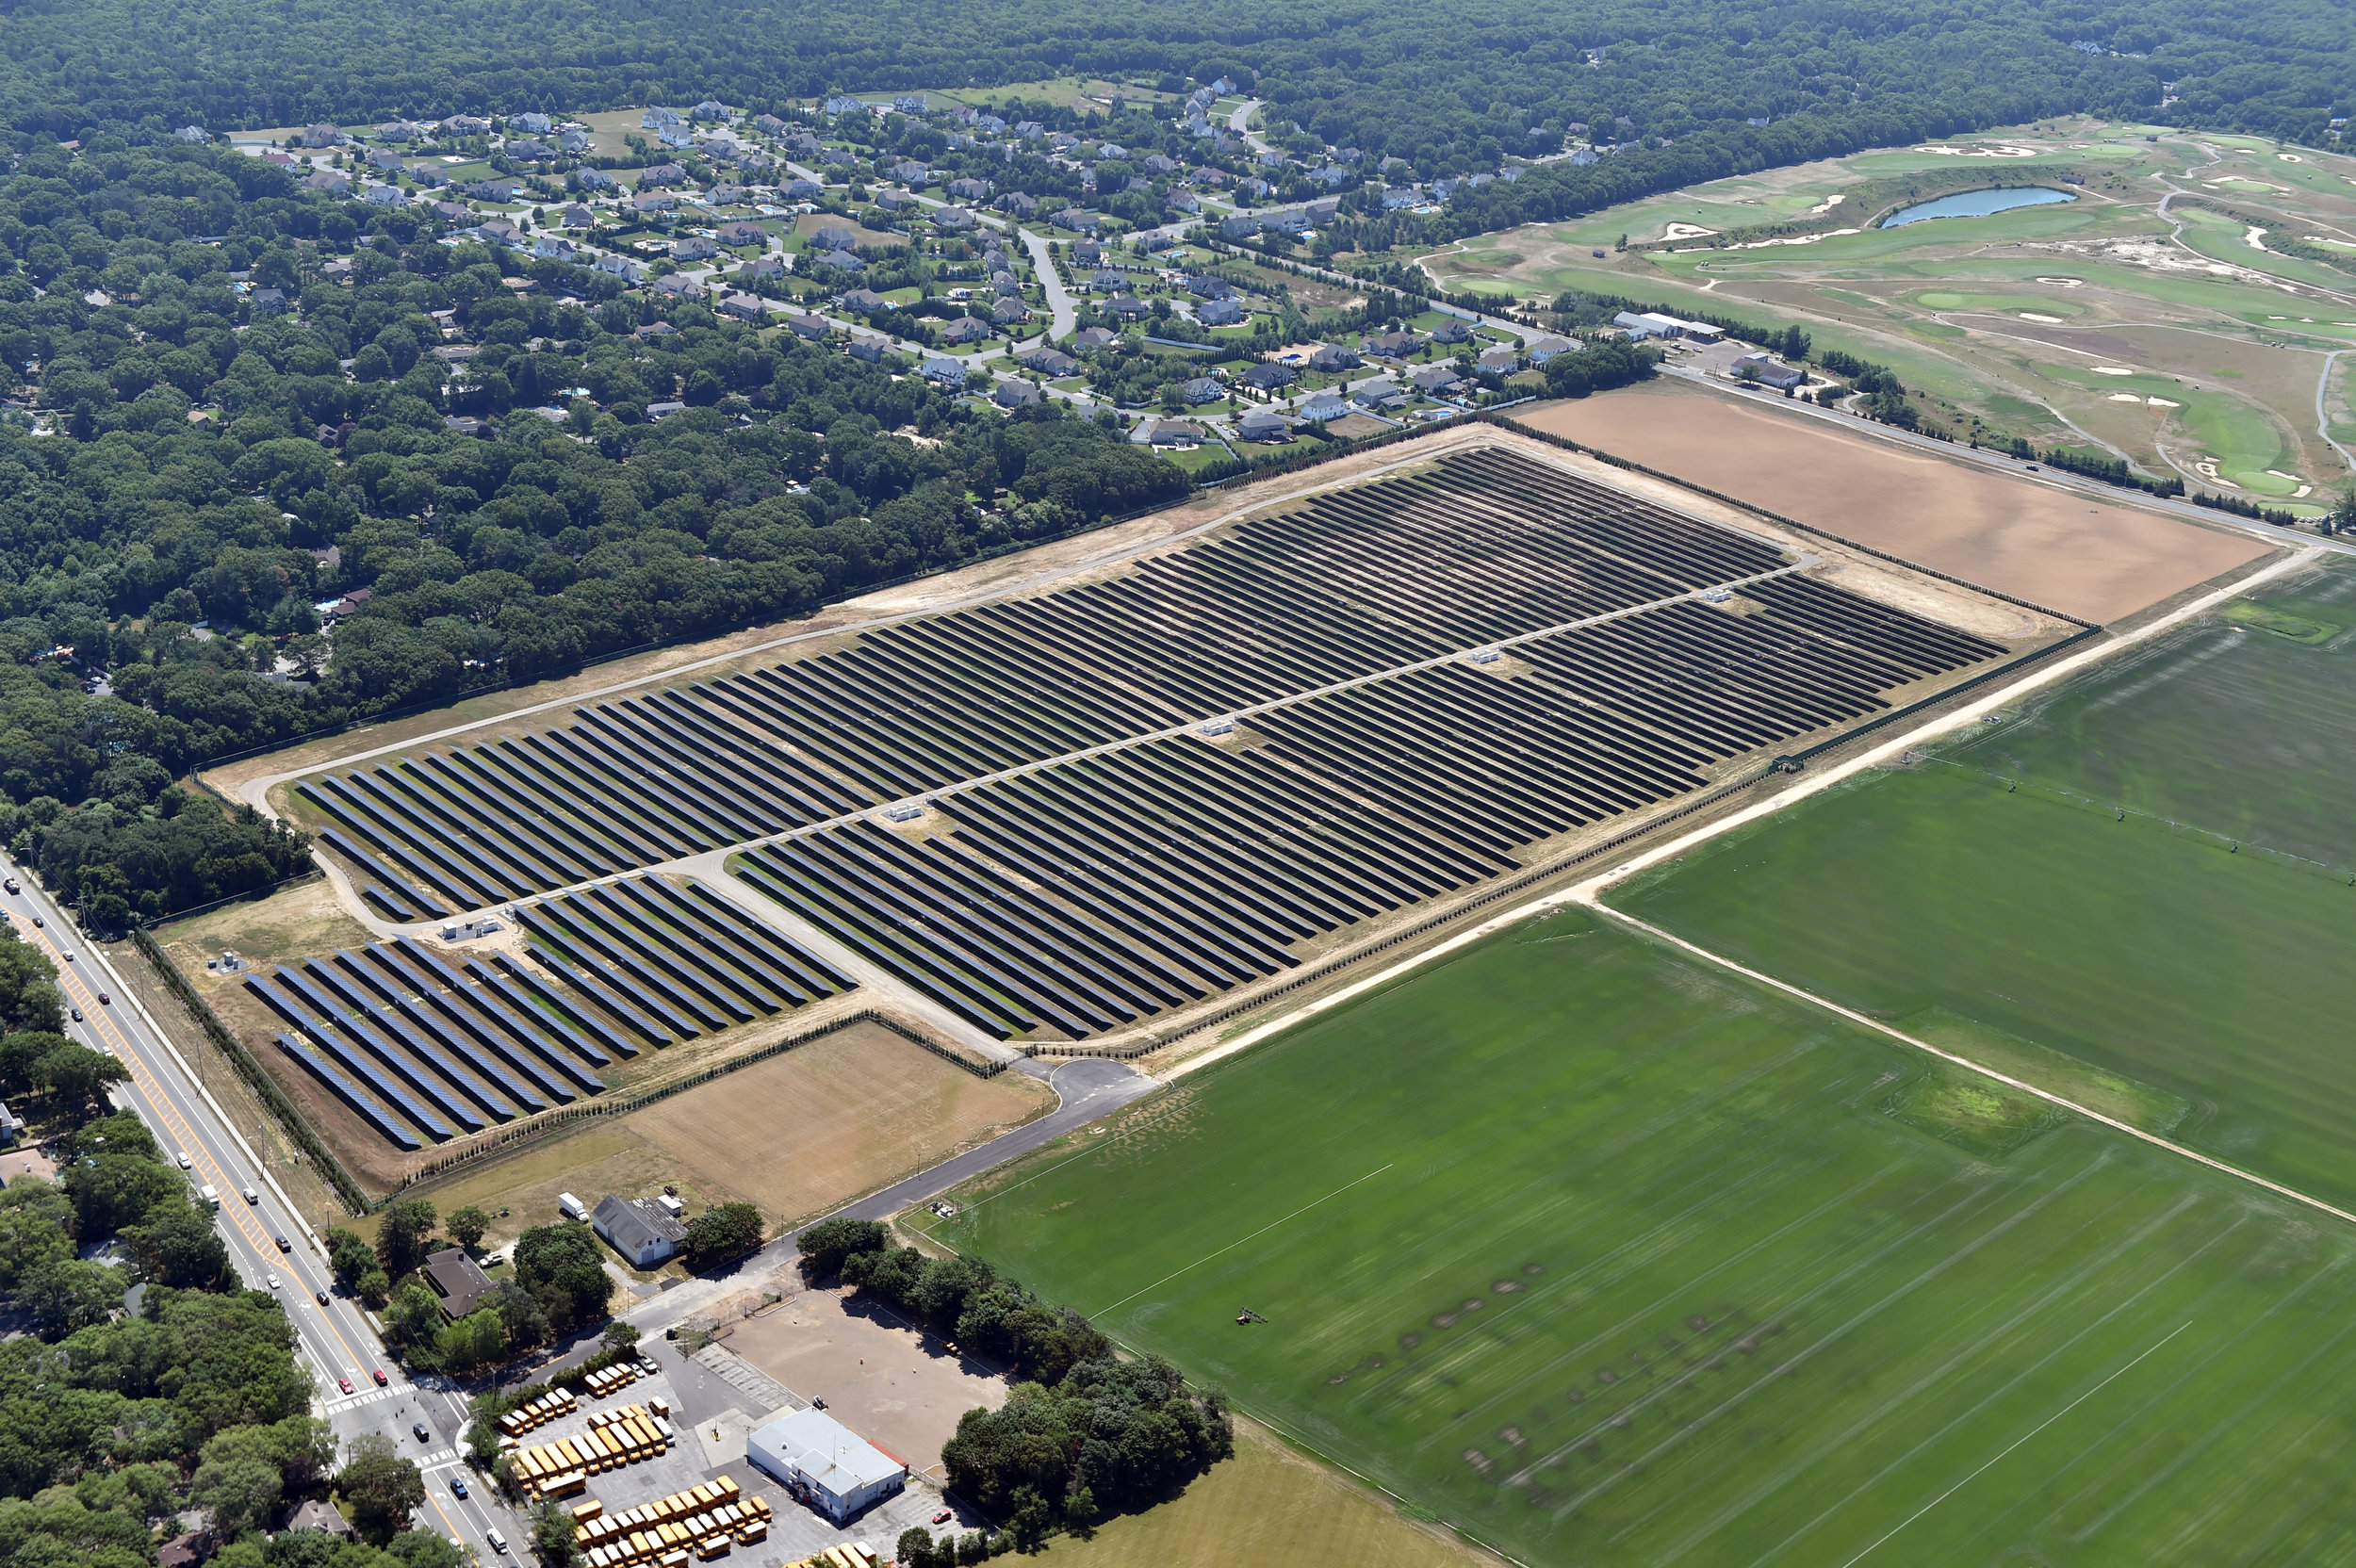 Borrego Solar and SPower's Leavenworth solar project development in NY